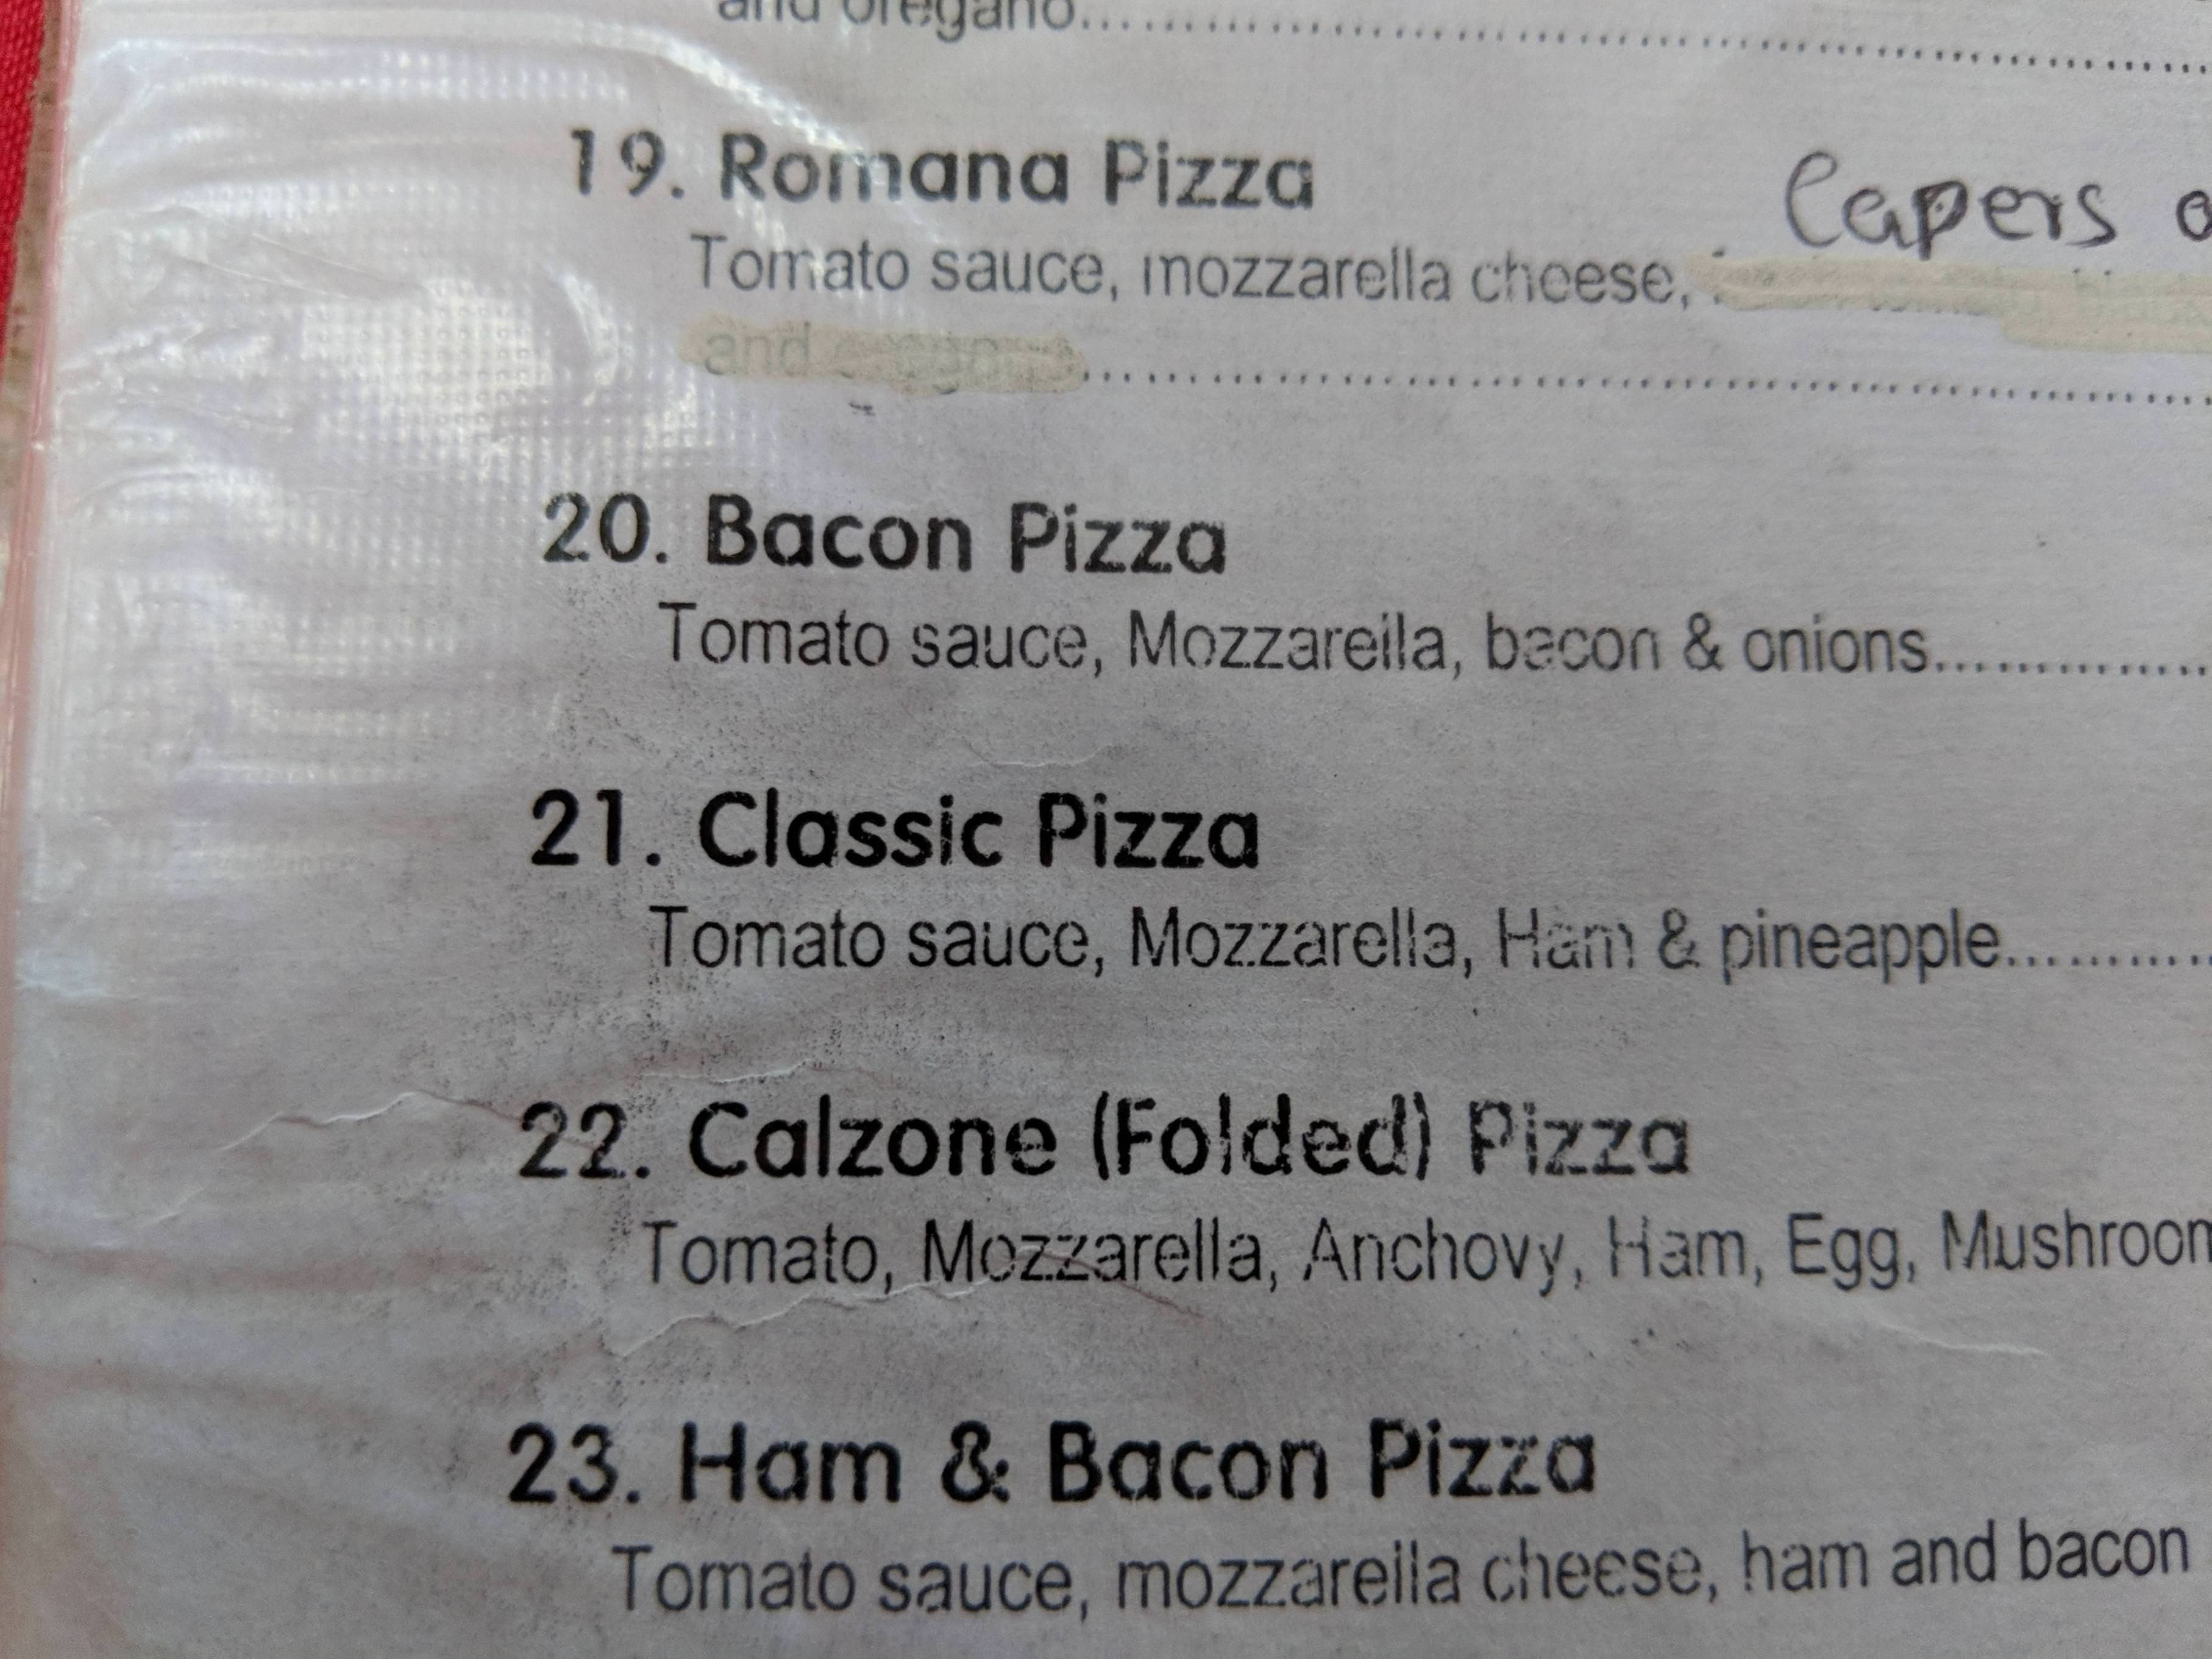 Traveling in Tanzania, they have a unique definition of Classic Pizza